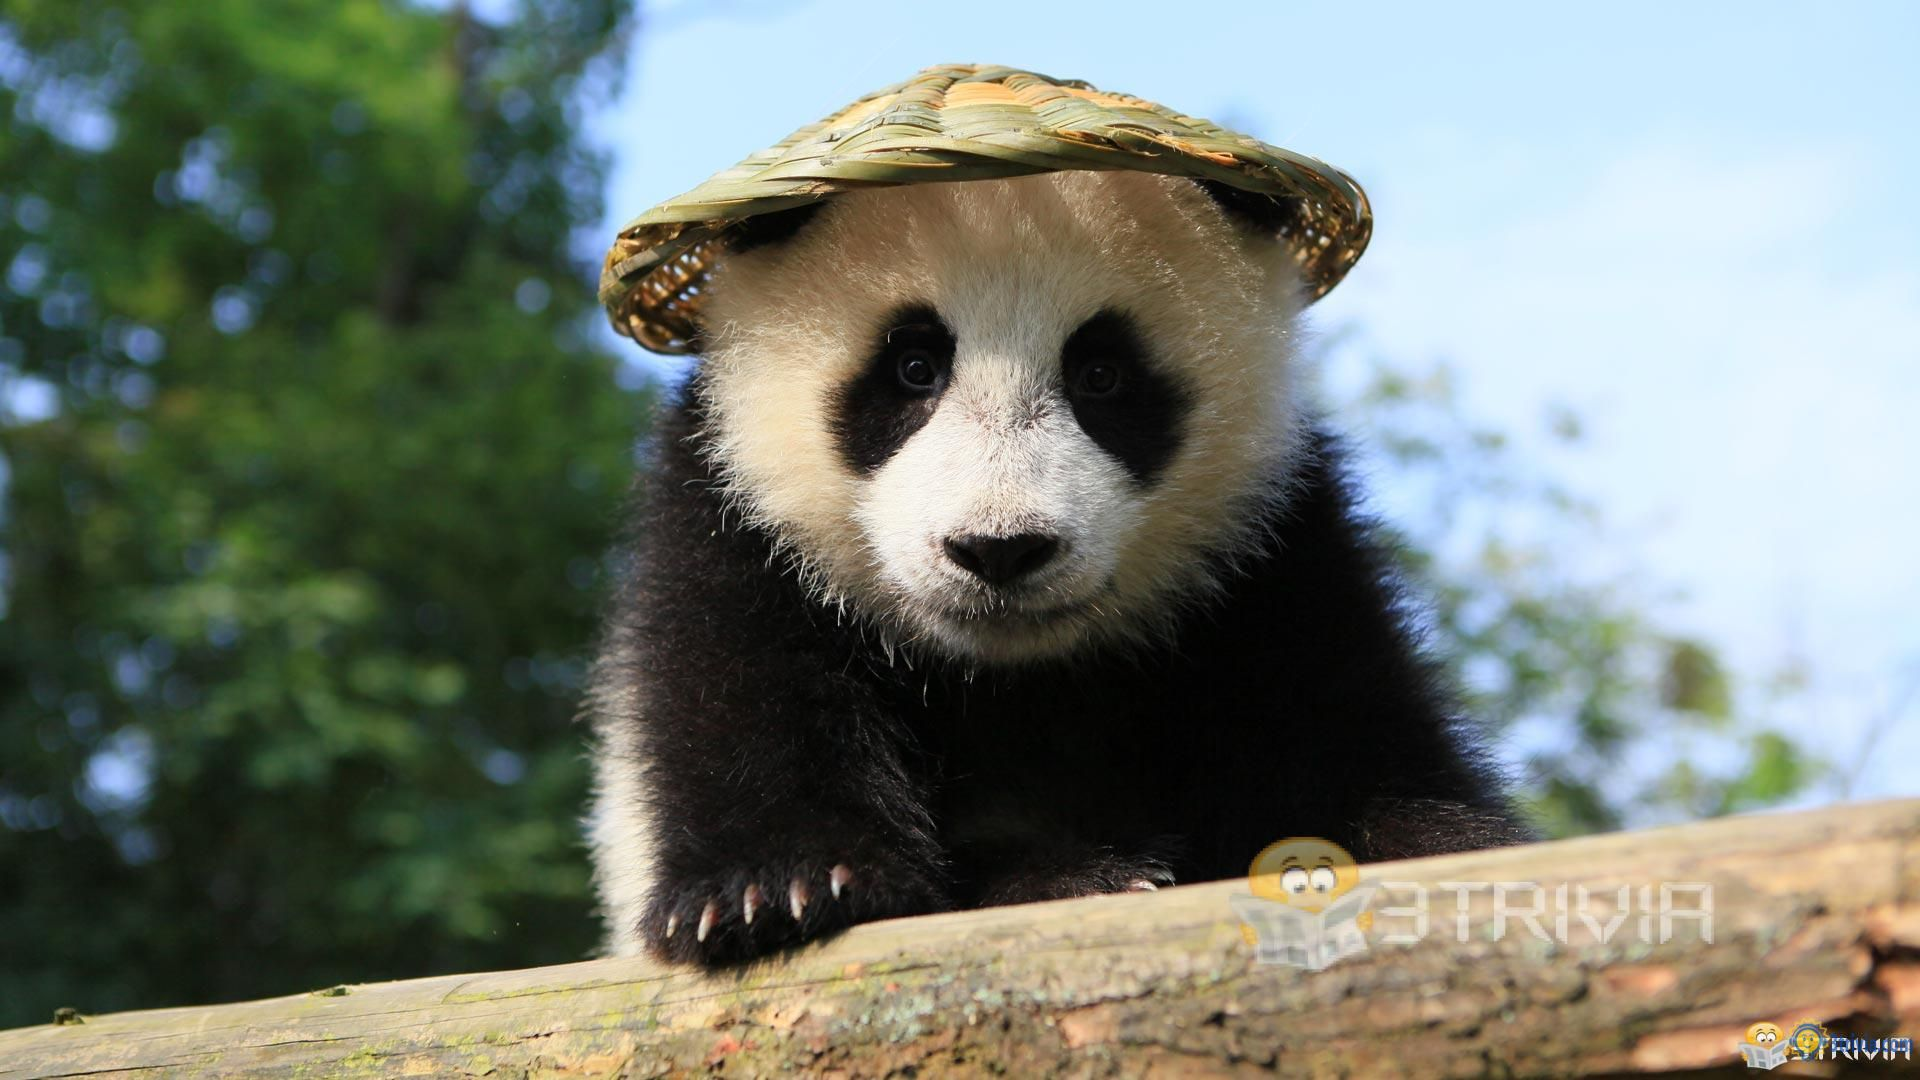 Panda Trivia:How many years can a panda generally live?